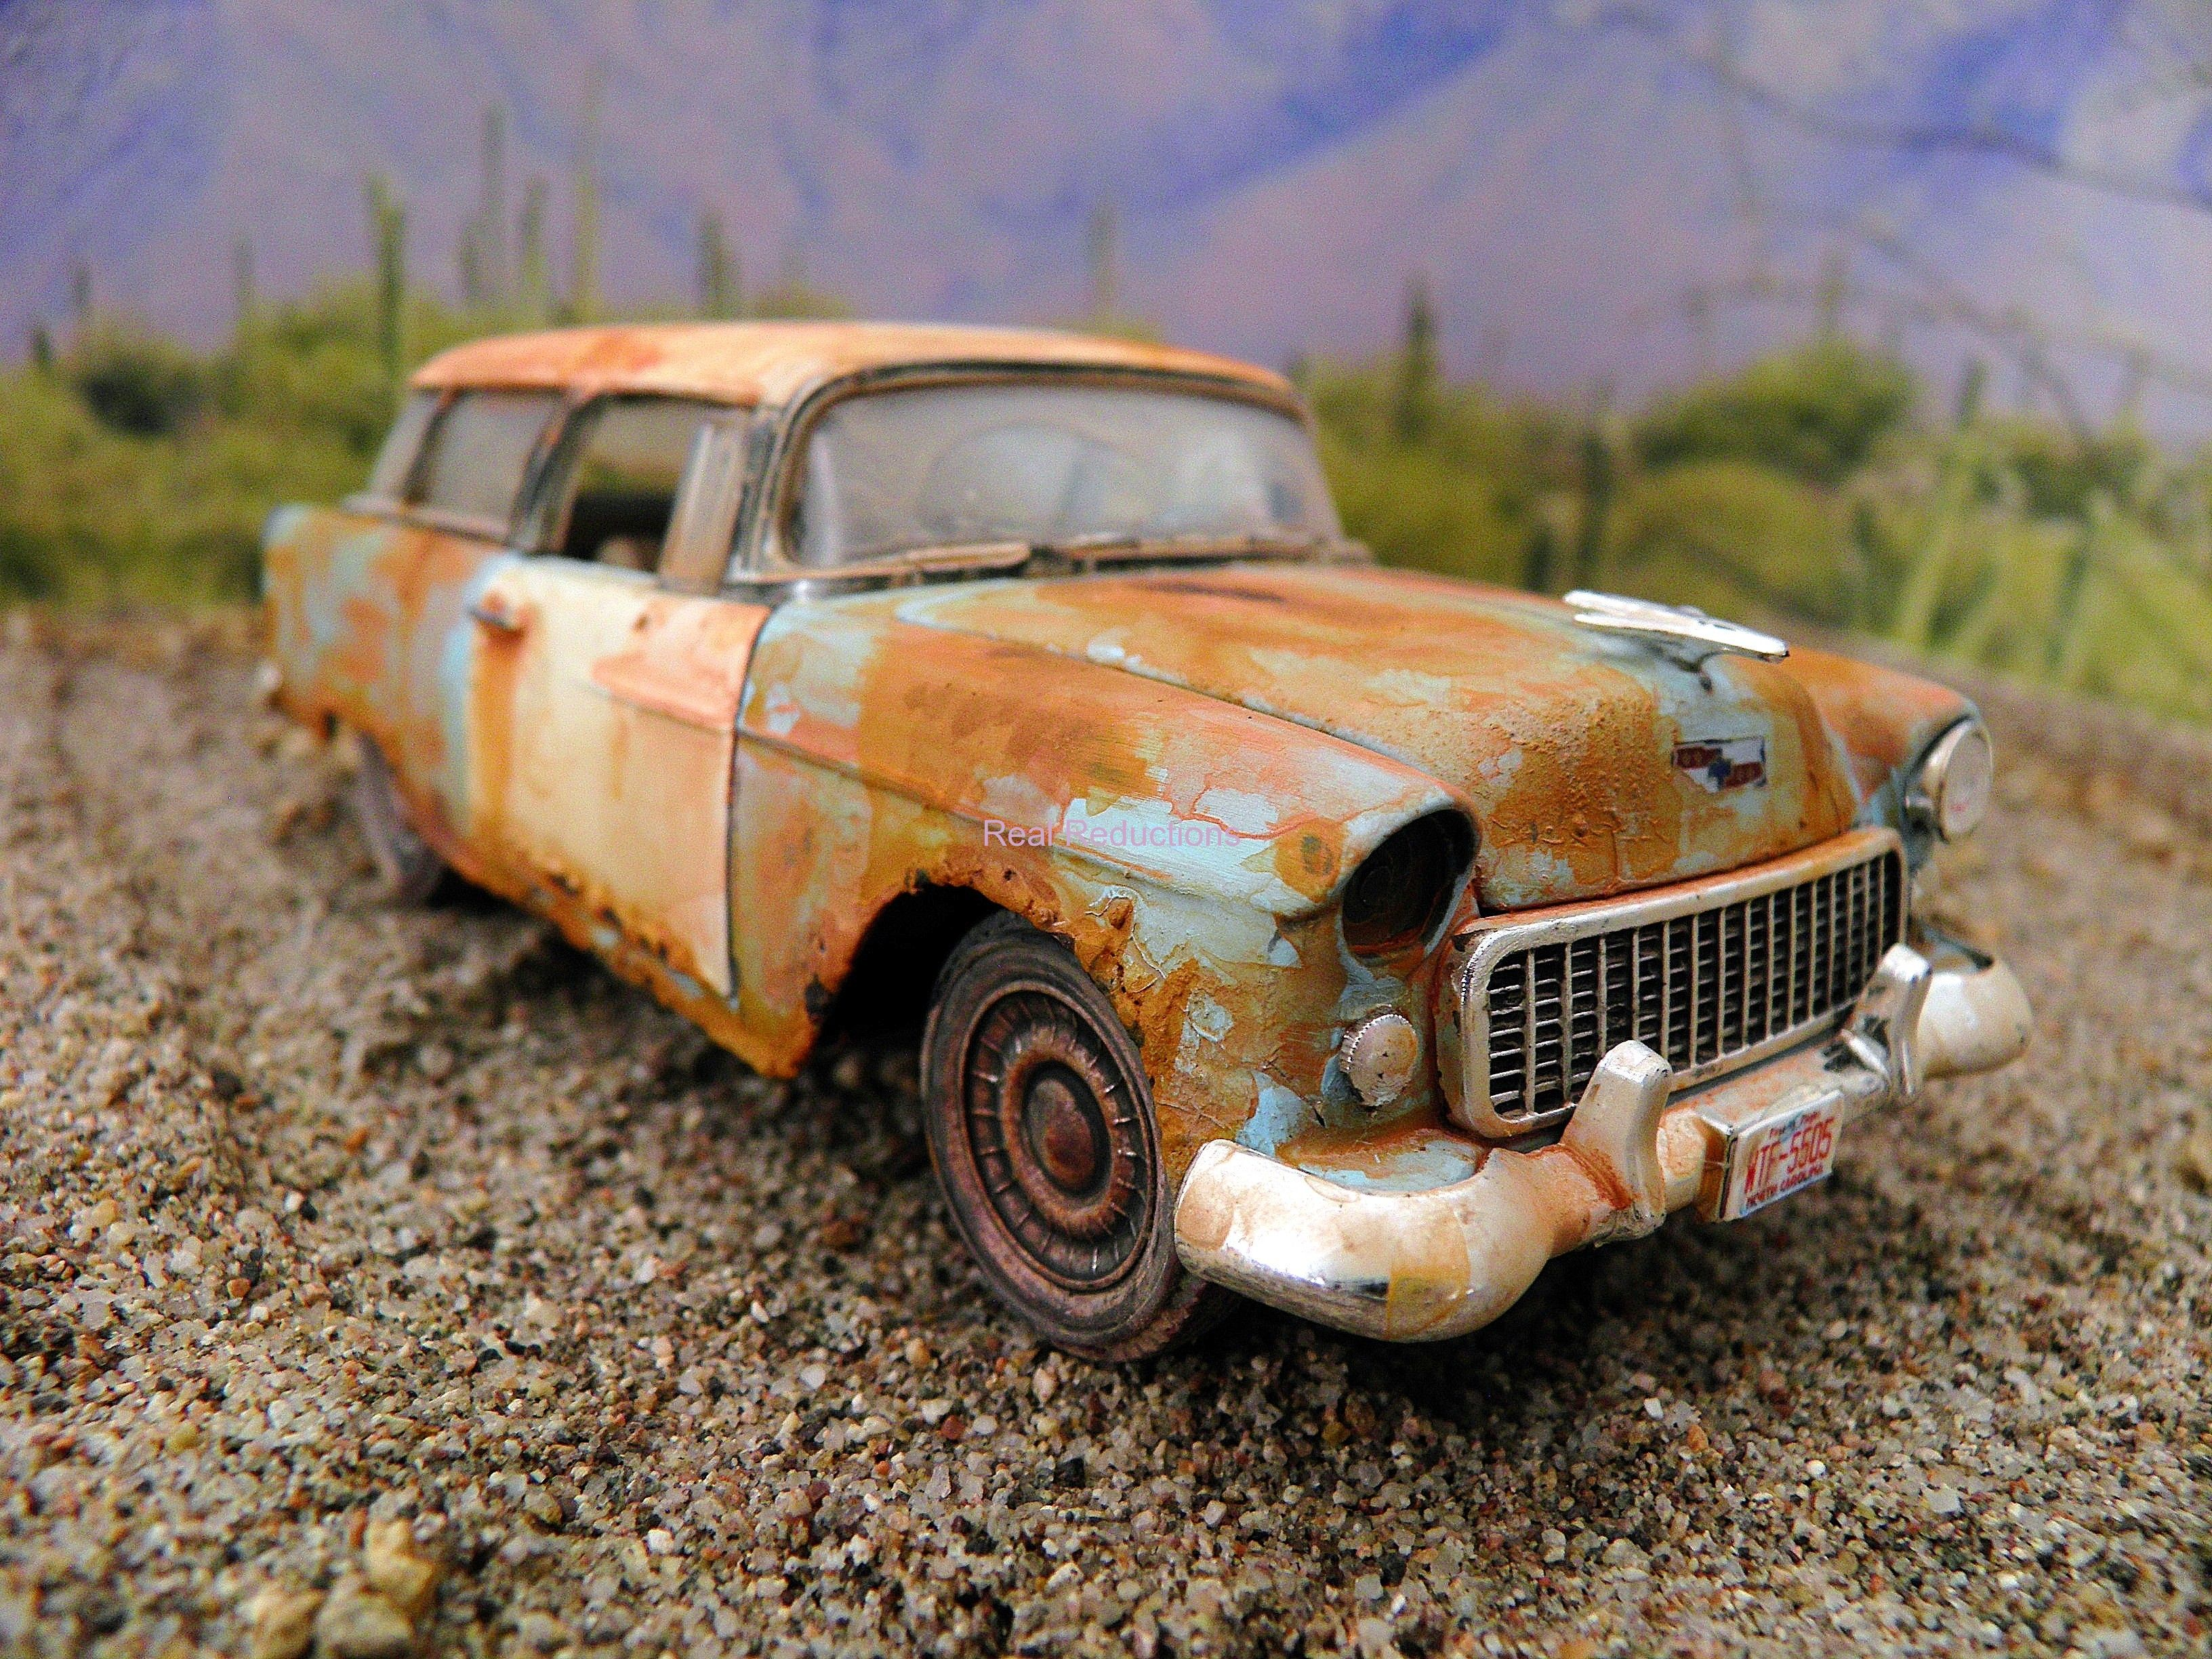 Old Rusty Car. Old Rusty Car   Rusted   Pinterest   Rusty cars  Rust and Models